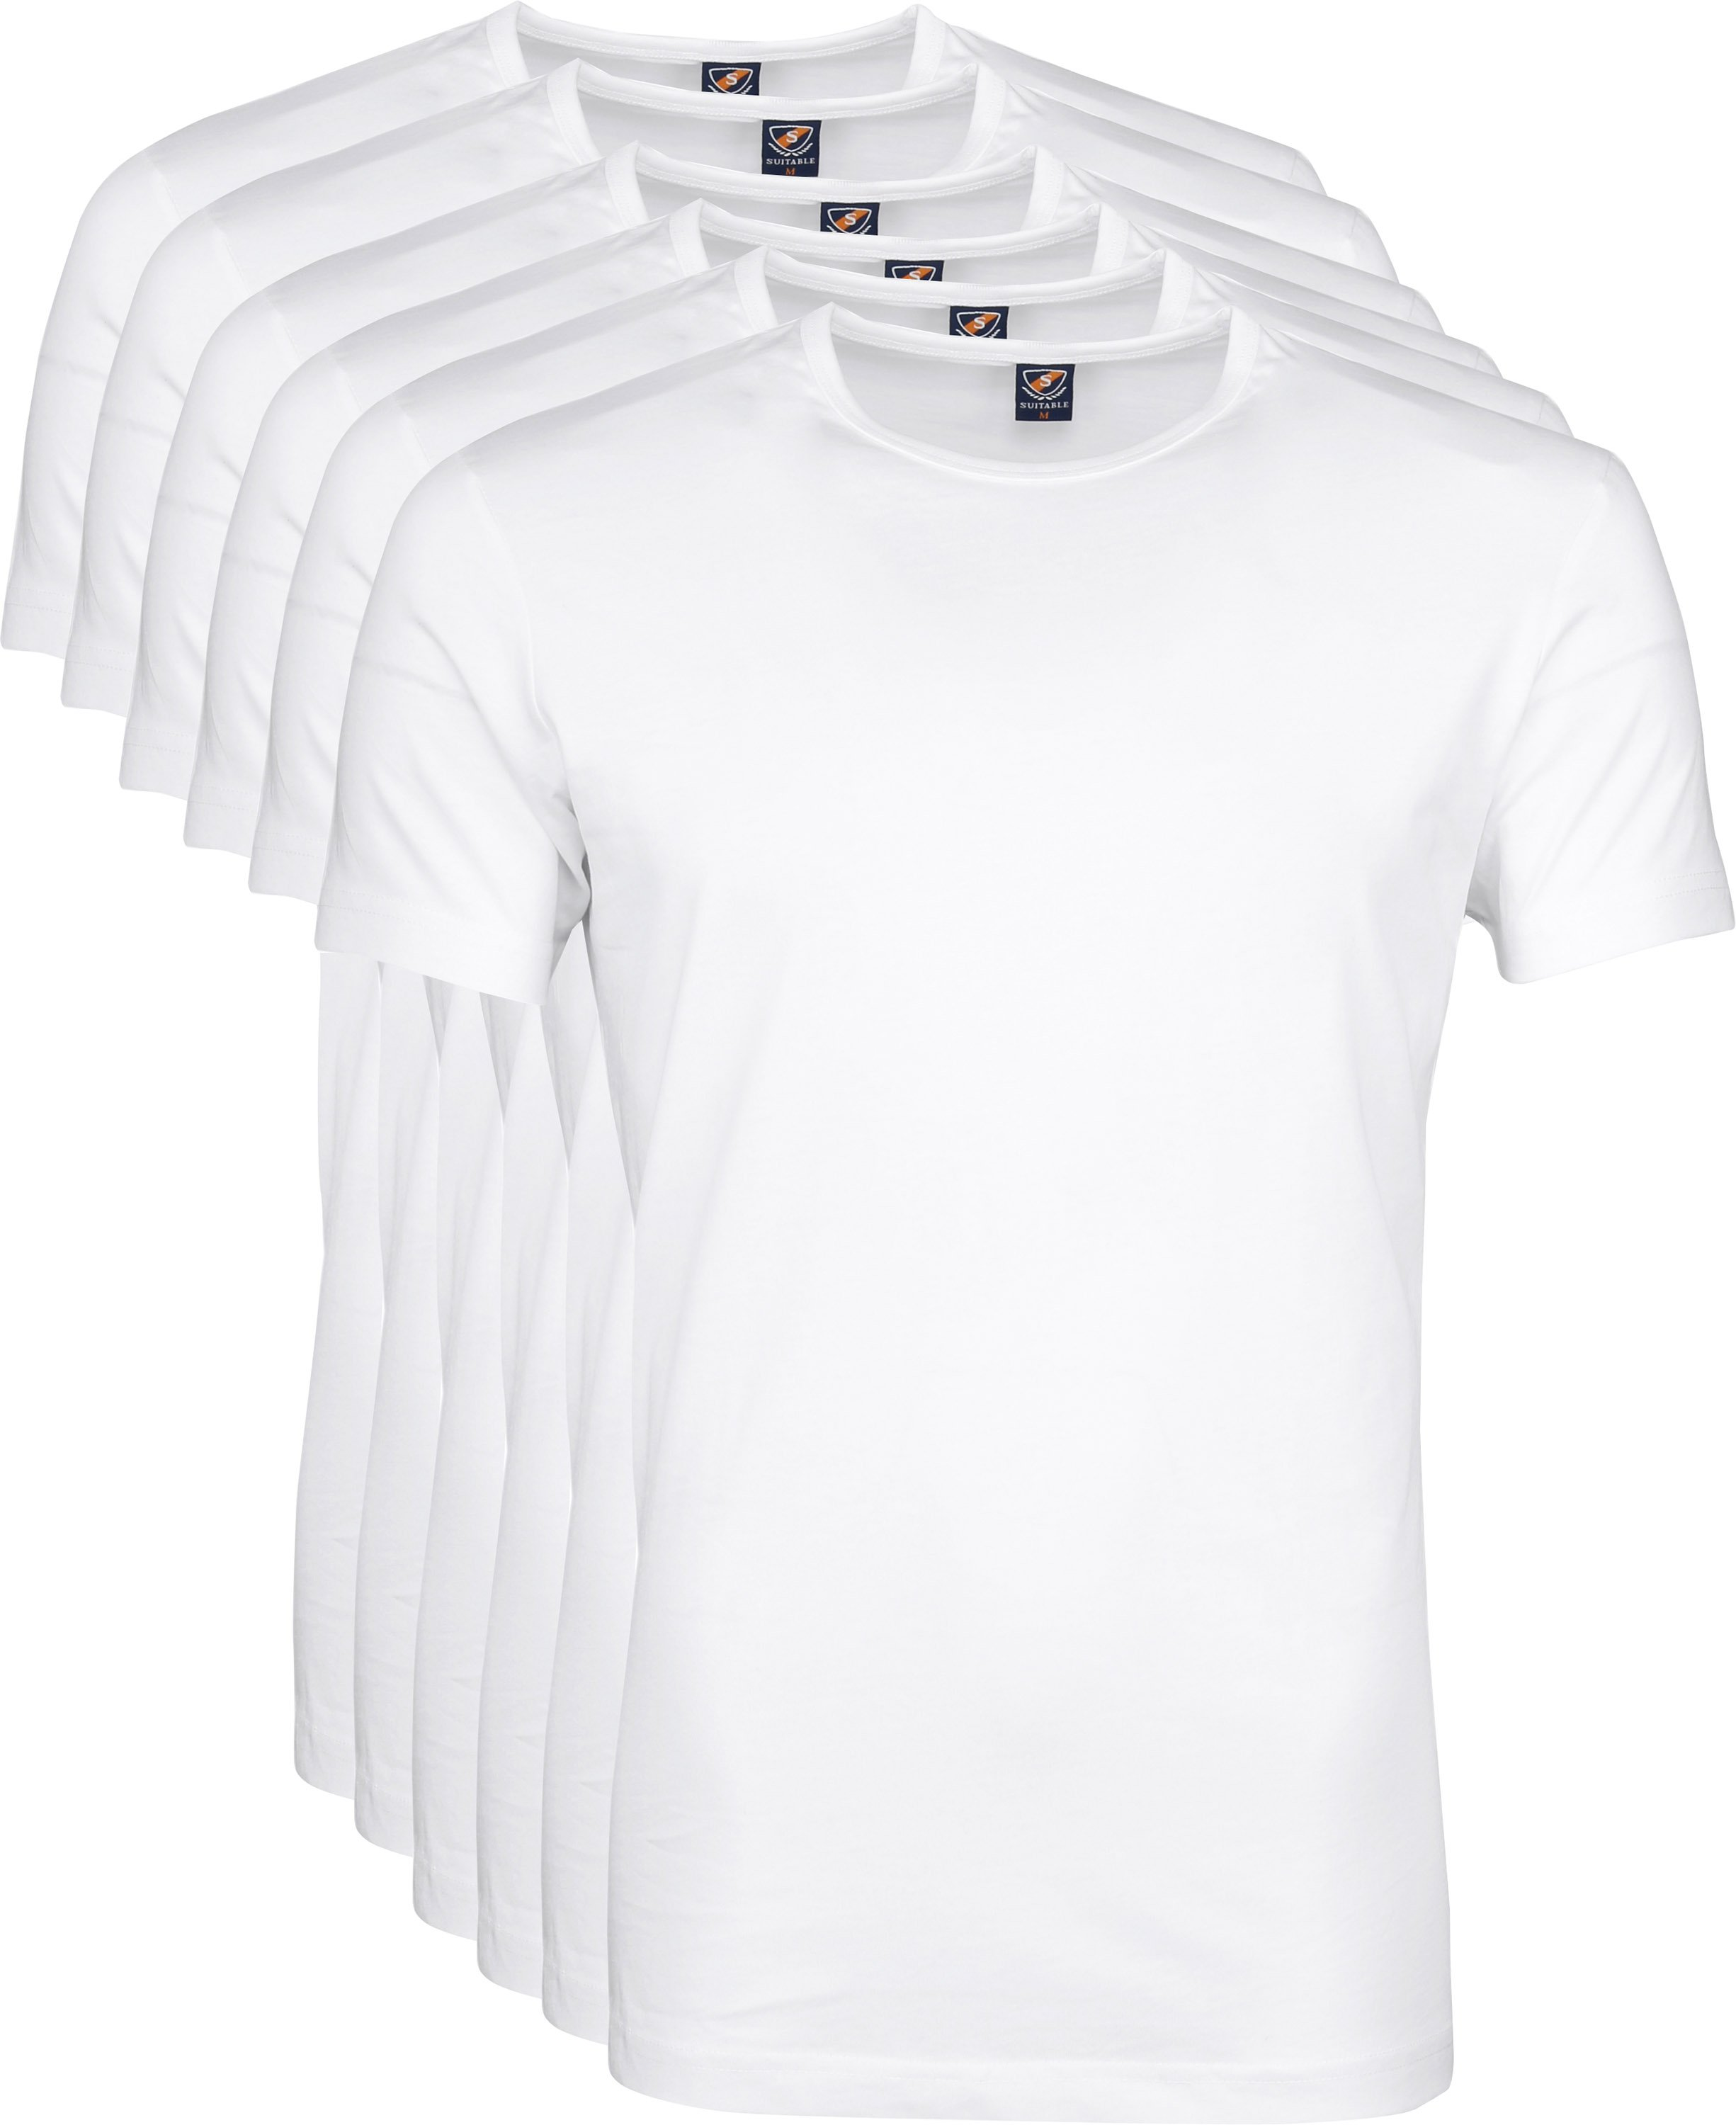 White T-shirt O-Neck 6-Pack